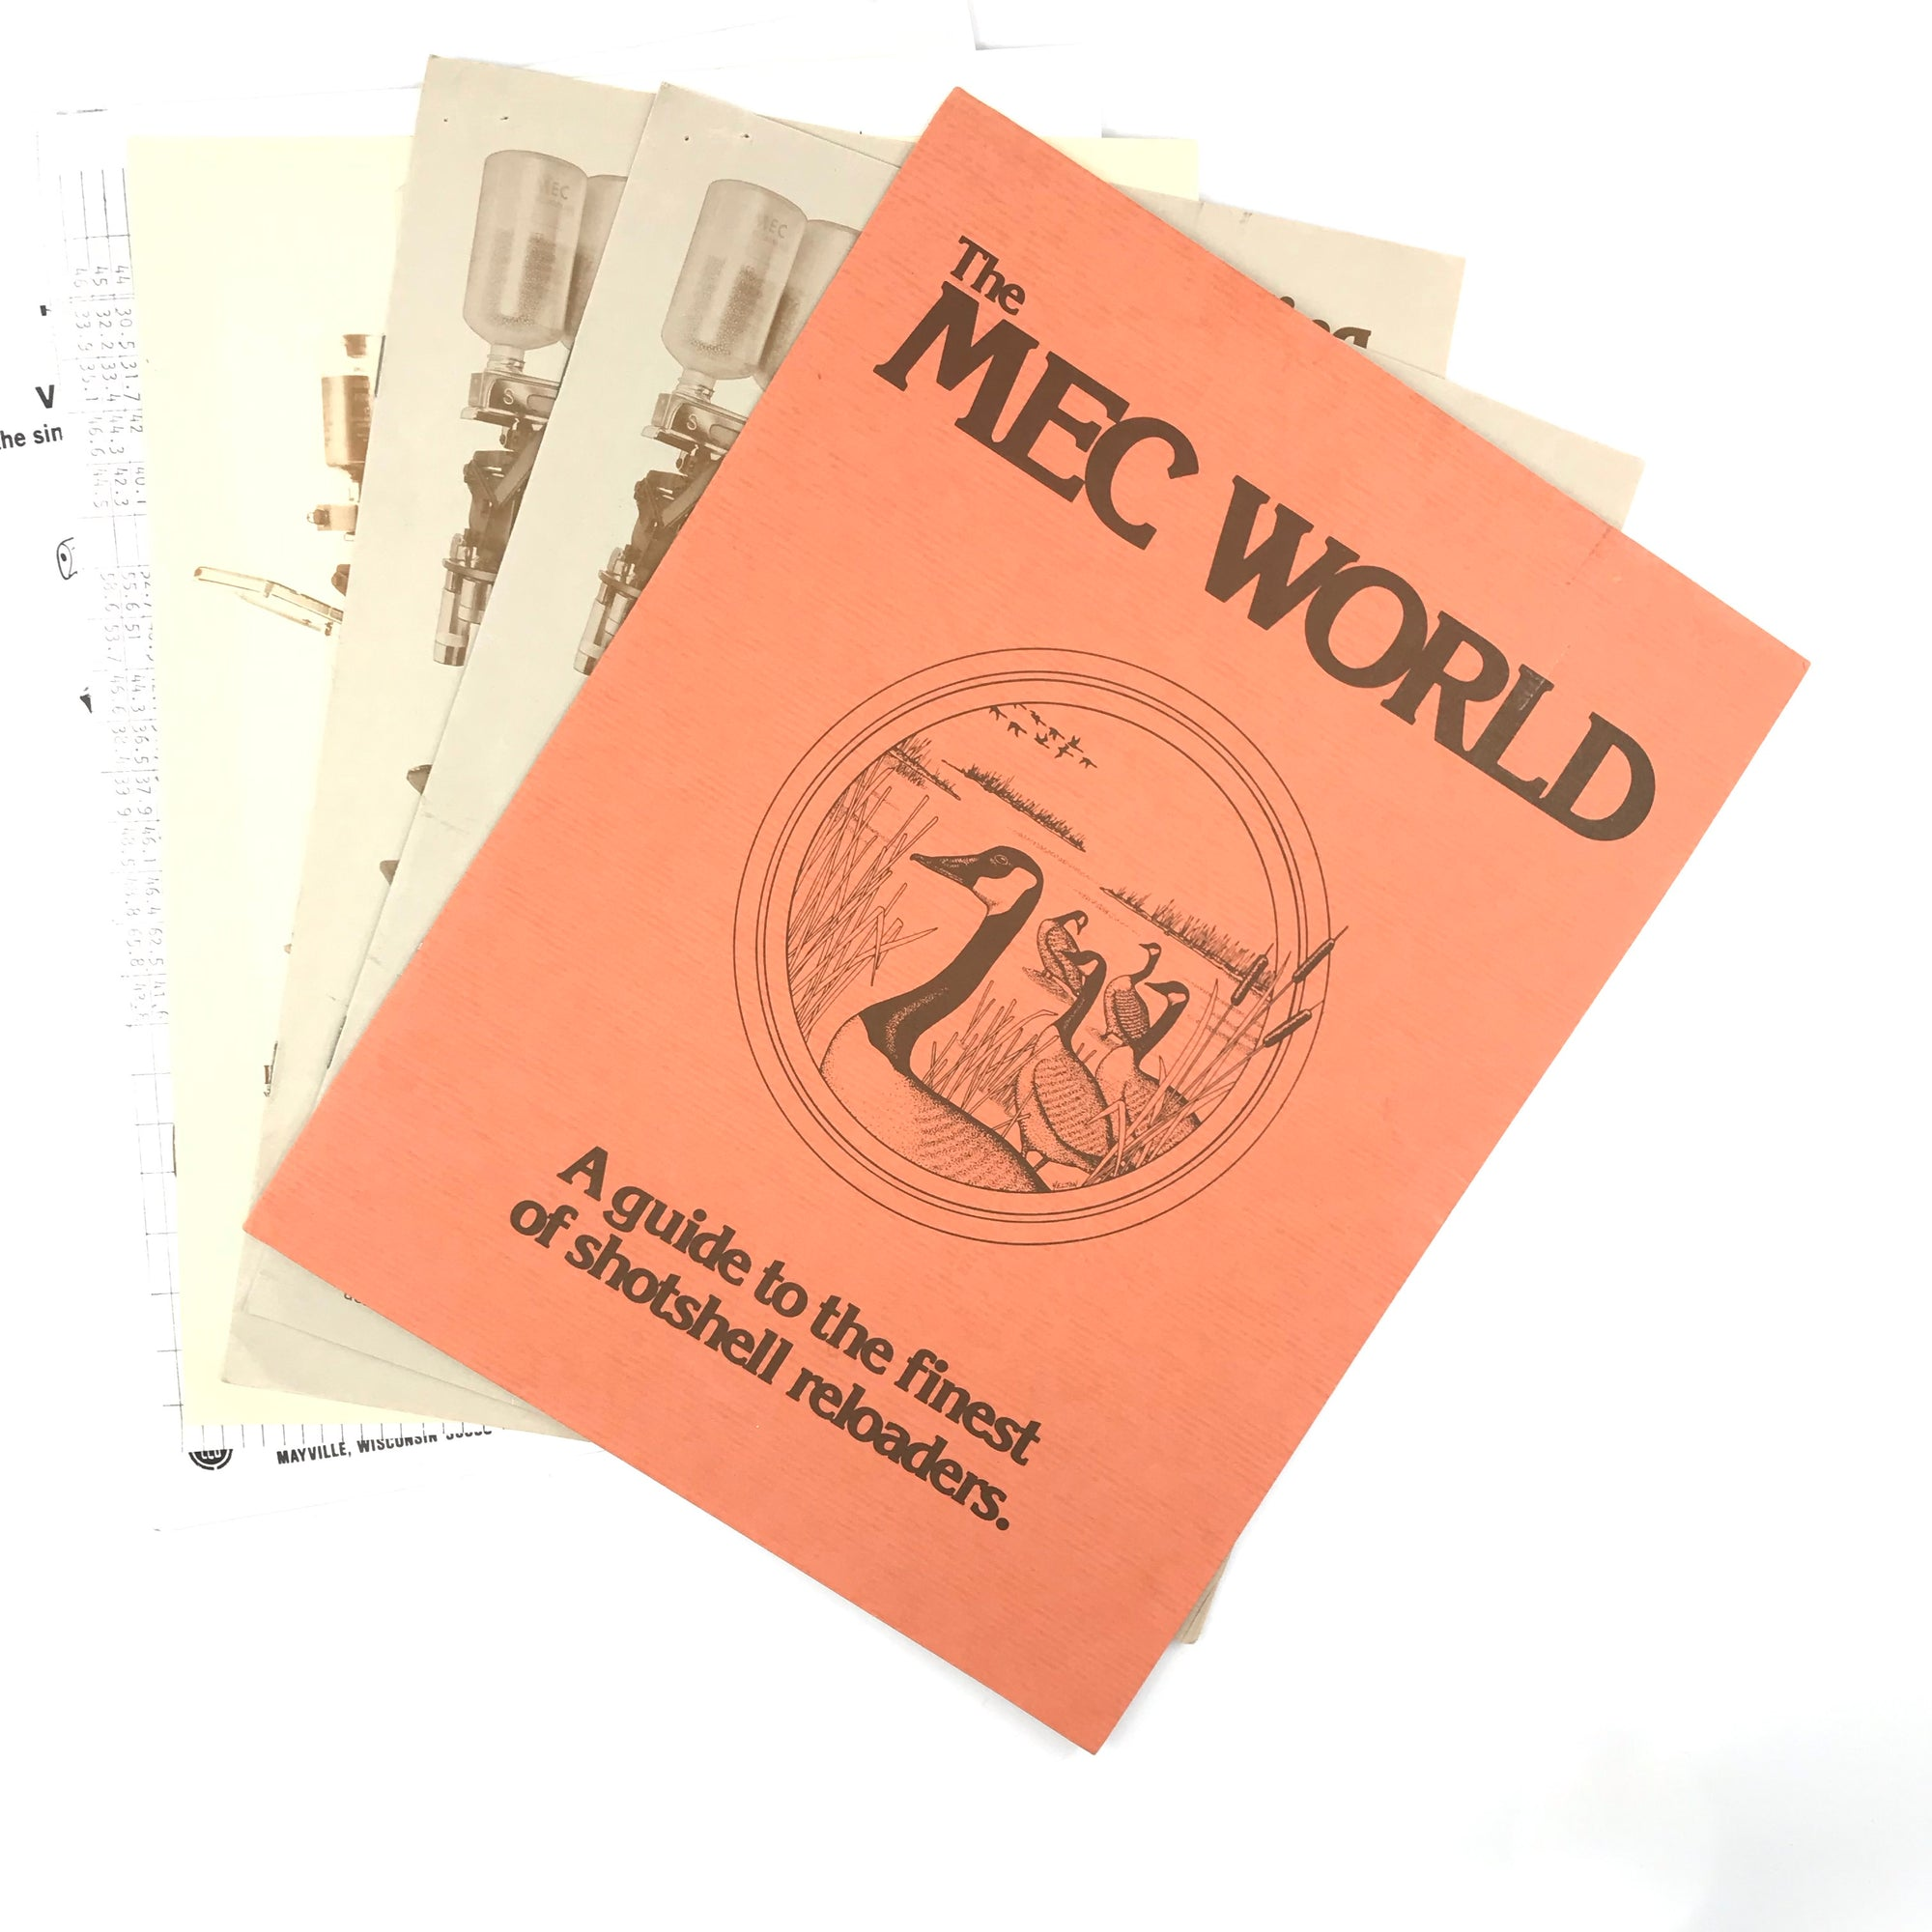 The MEC World A Guide to the Finest of Shotshell Reloaders Pamphlet / (2) MEC 700 Versamec Instruction Manual / Grabber 76 Instruction Manual